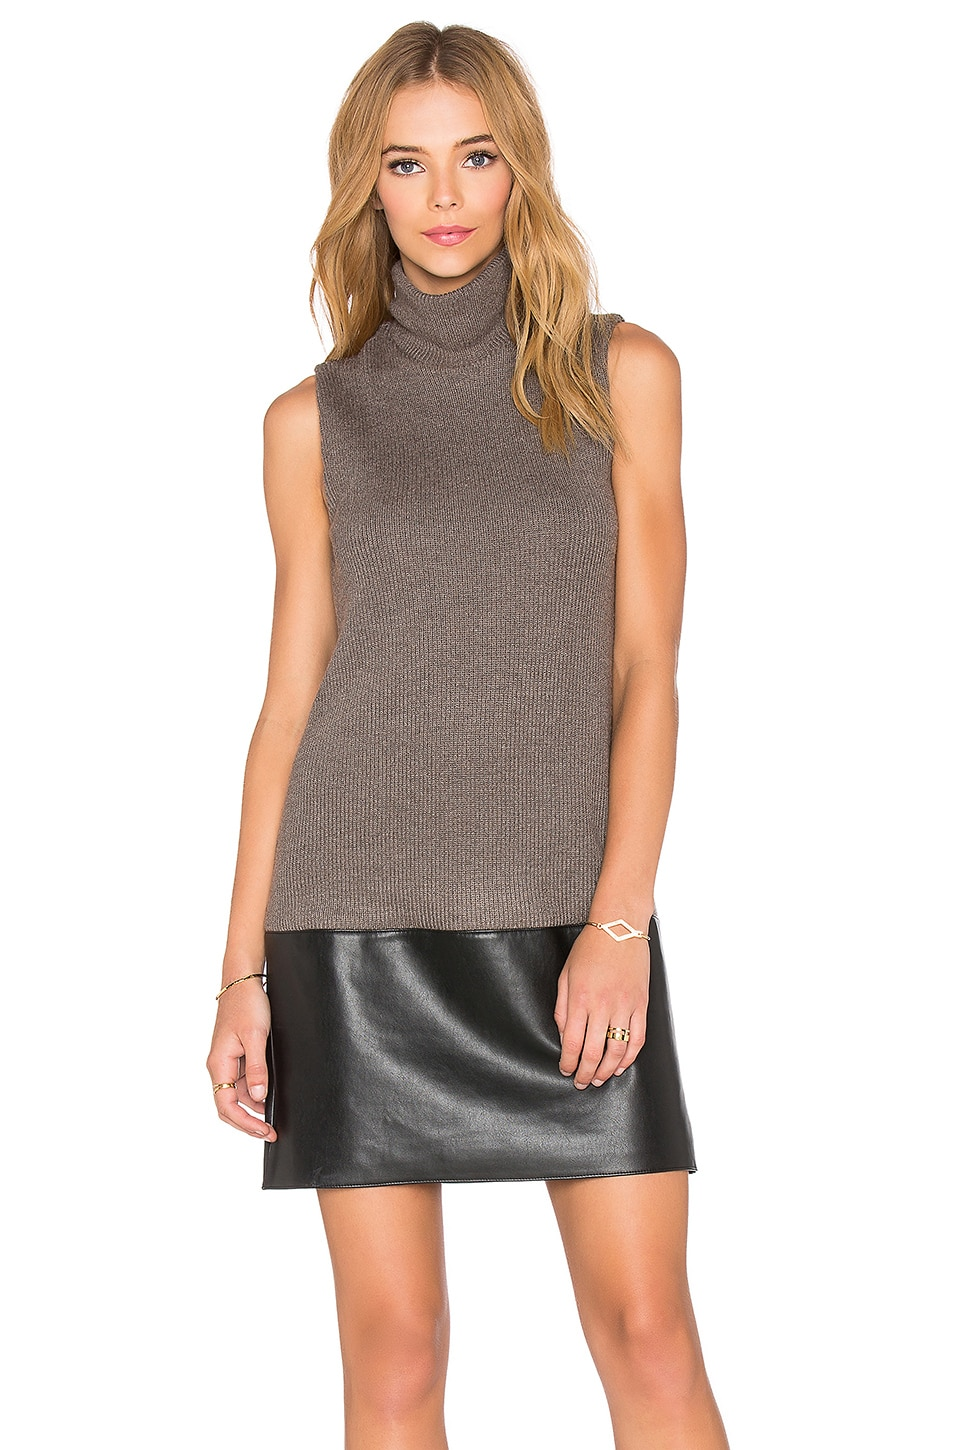 Bailey 44 American in Paris Dress in Taupe & Black